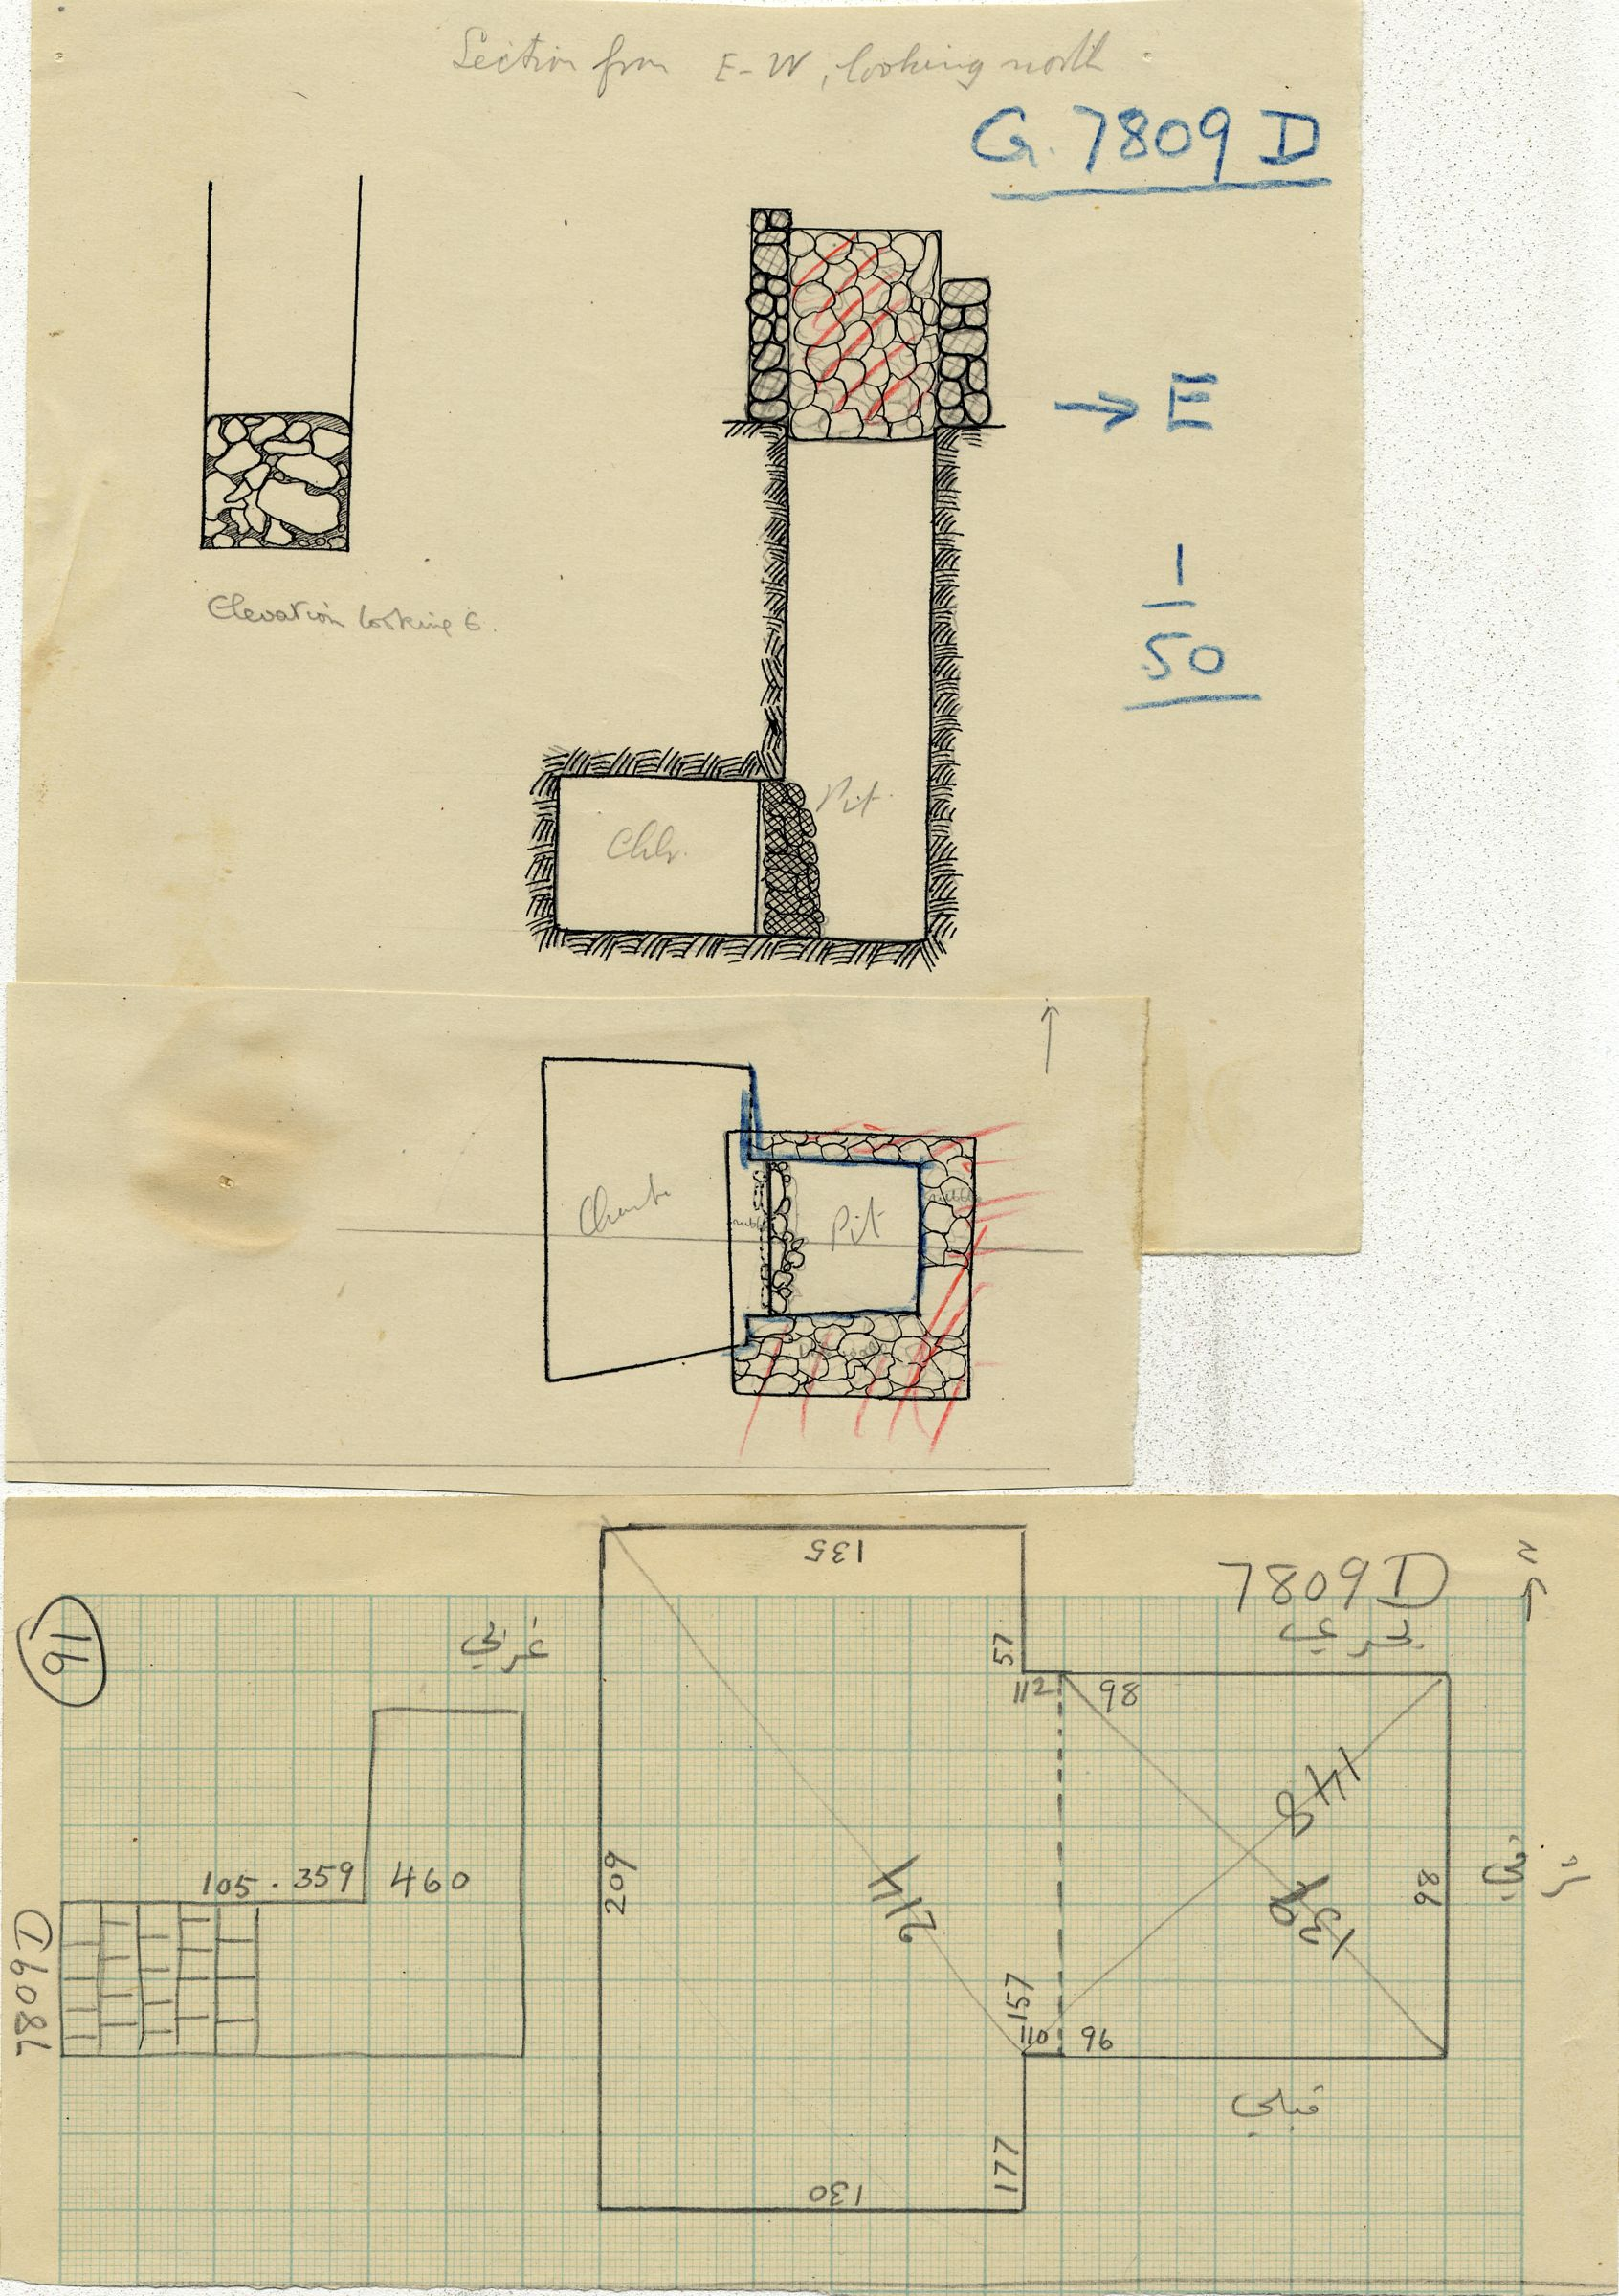 Maps and plans: G 7809, Shaft D